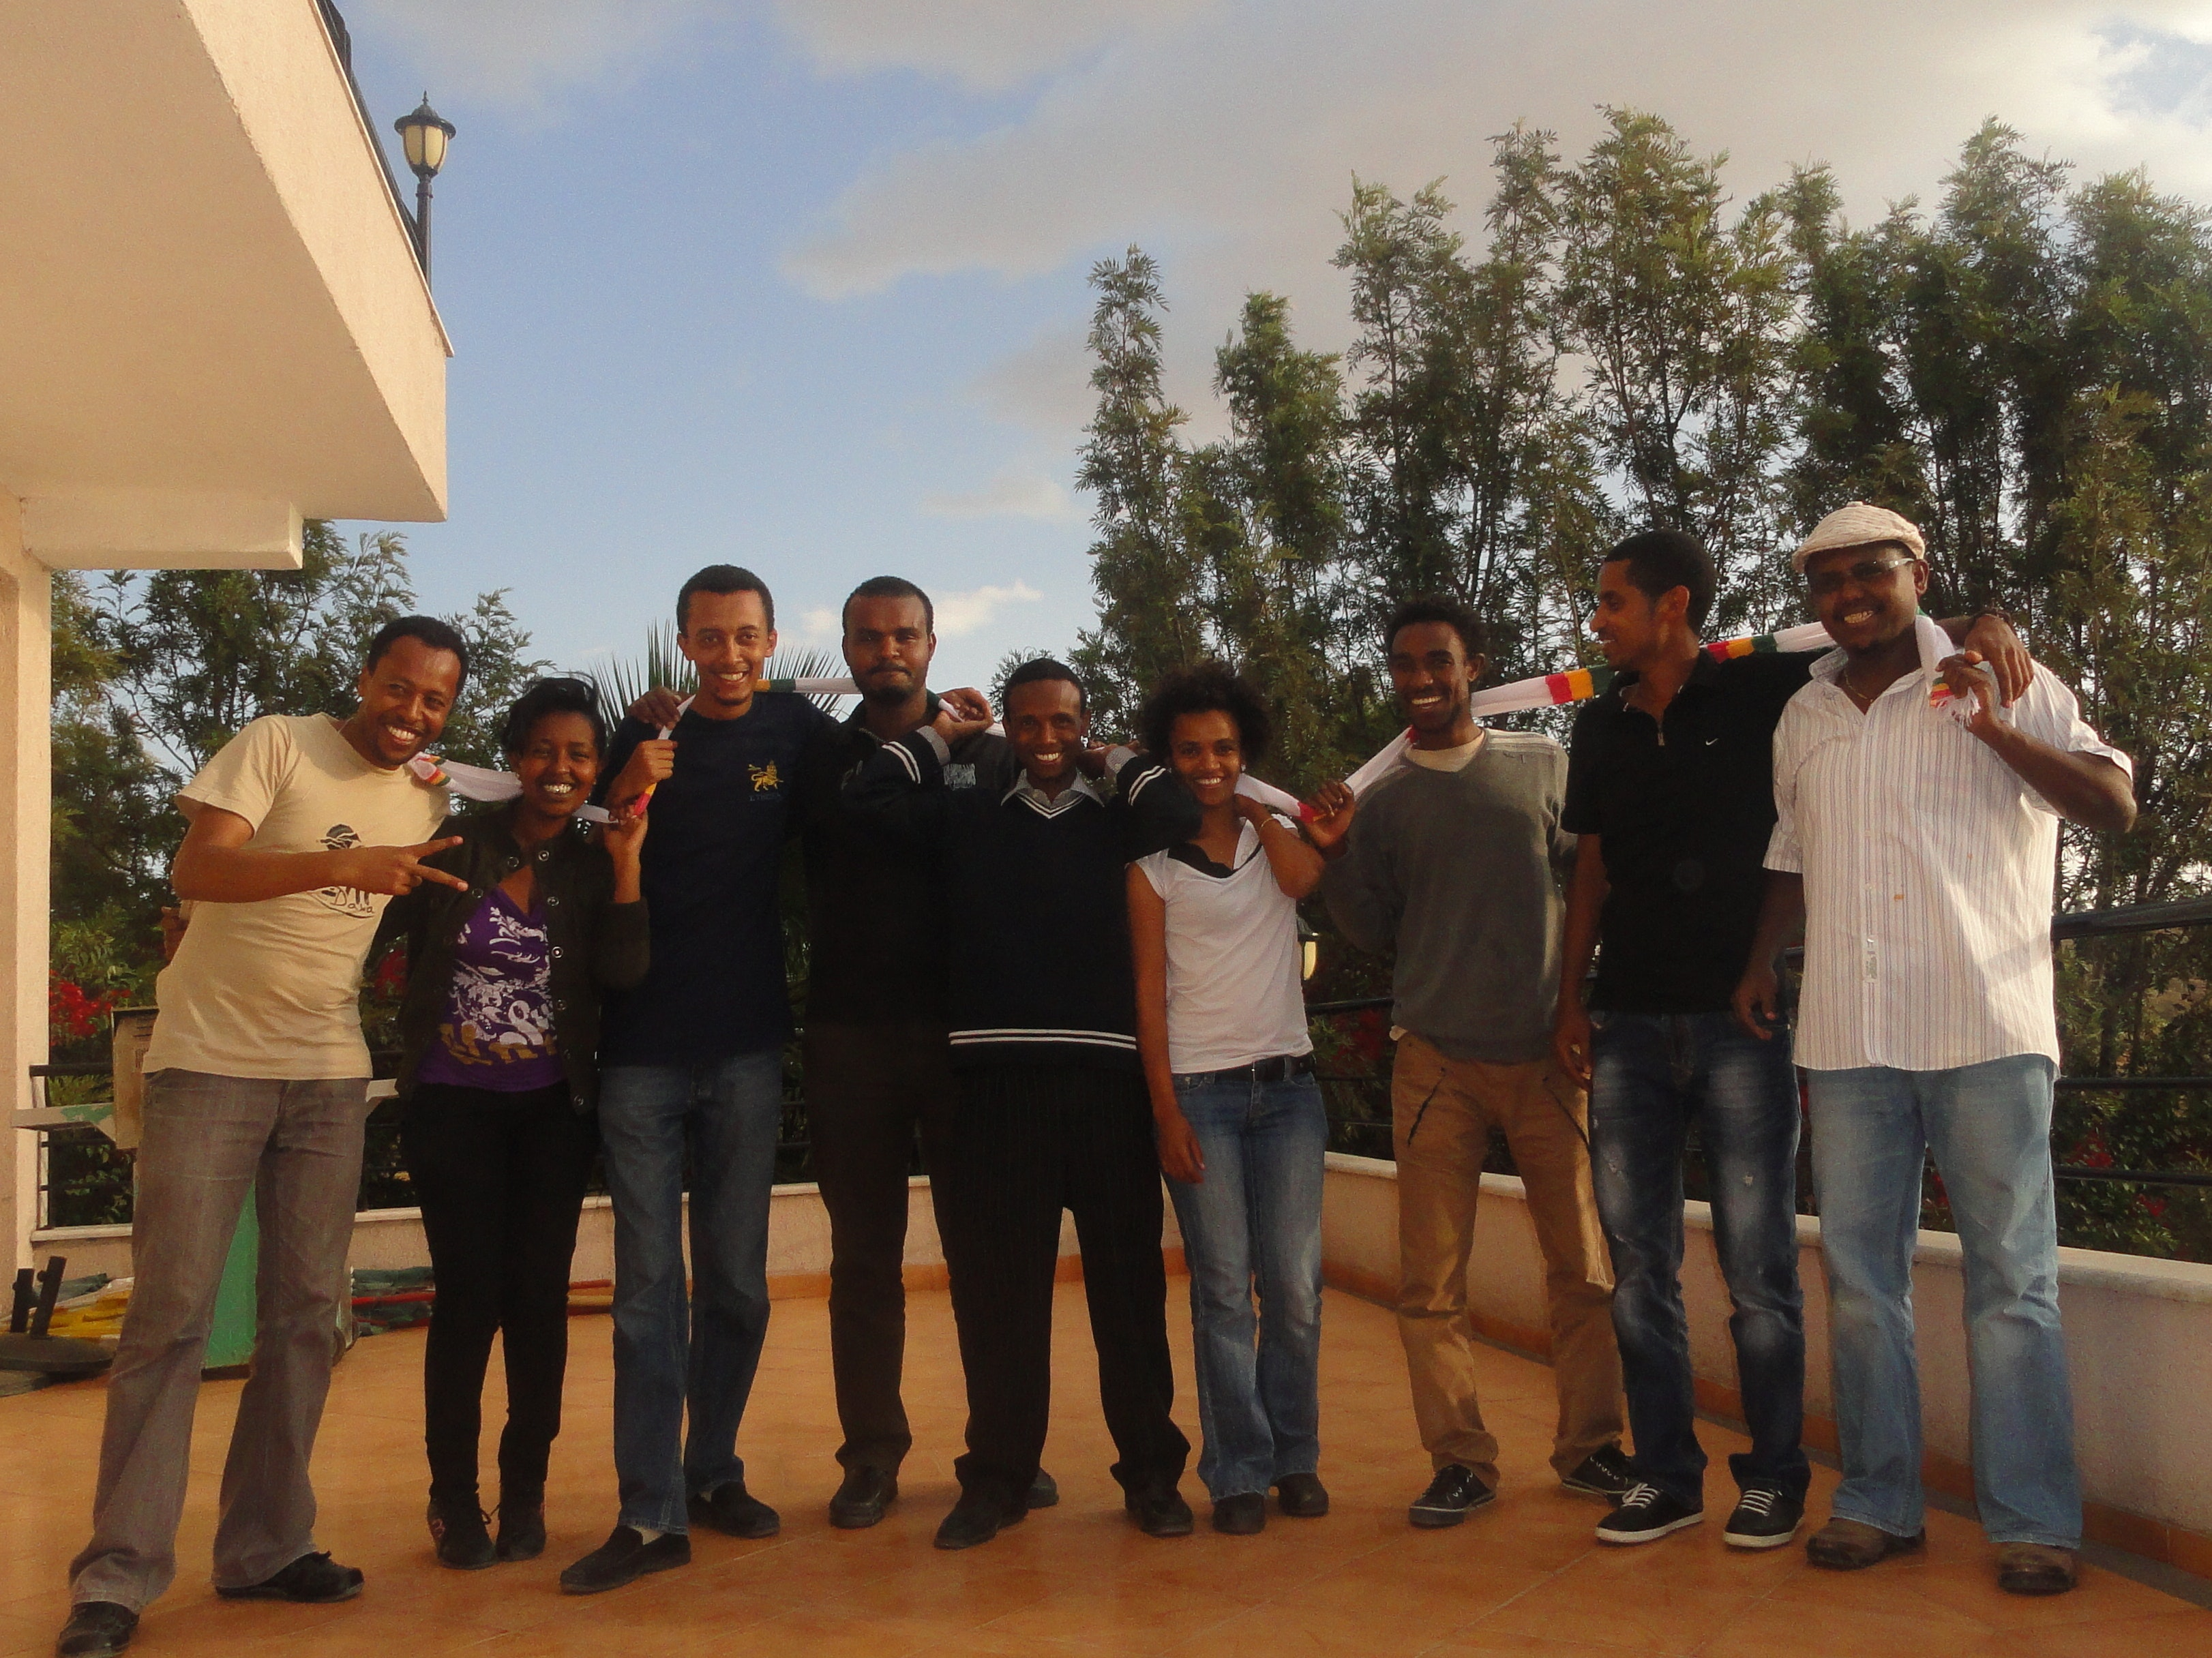 Ethiopian Bloggers Go Free After 18 Months in Prison